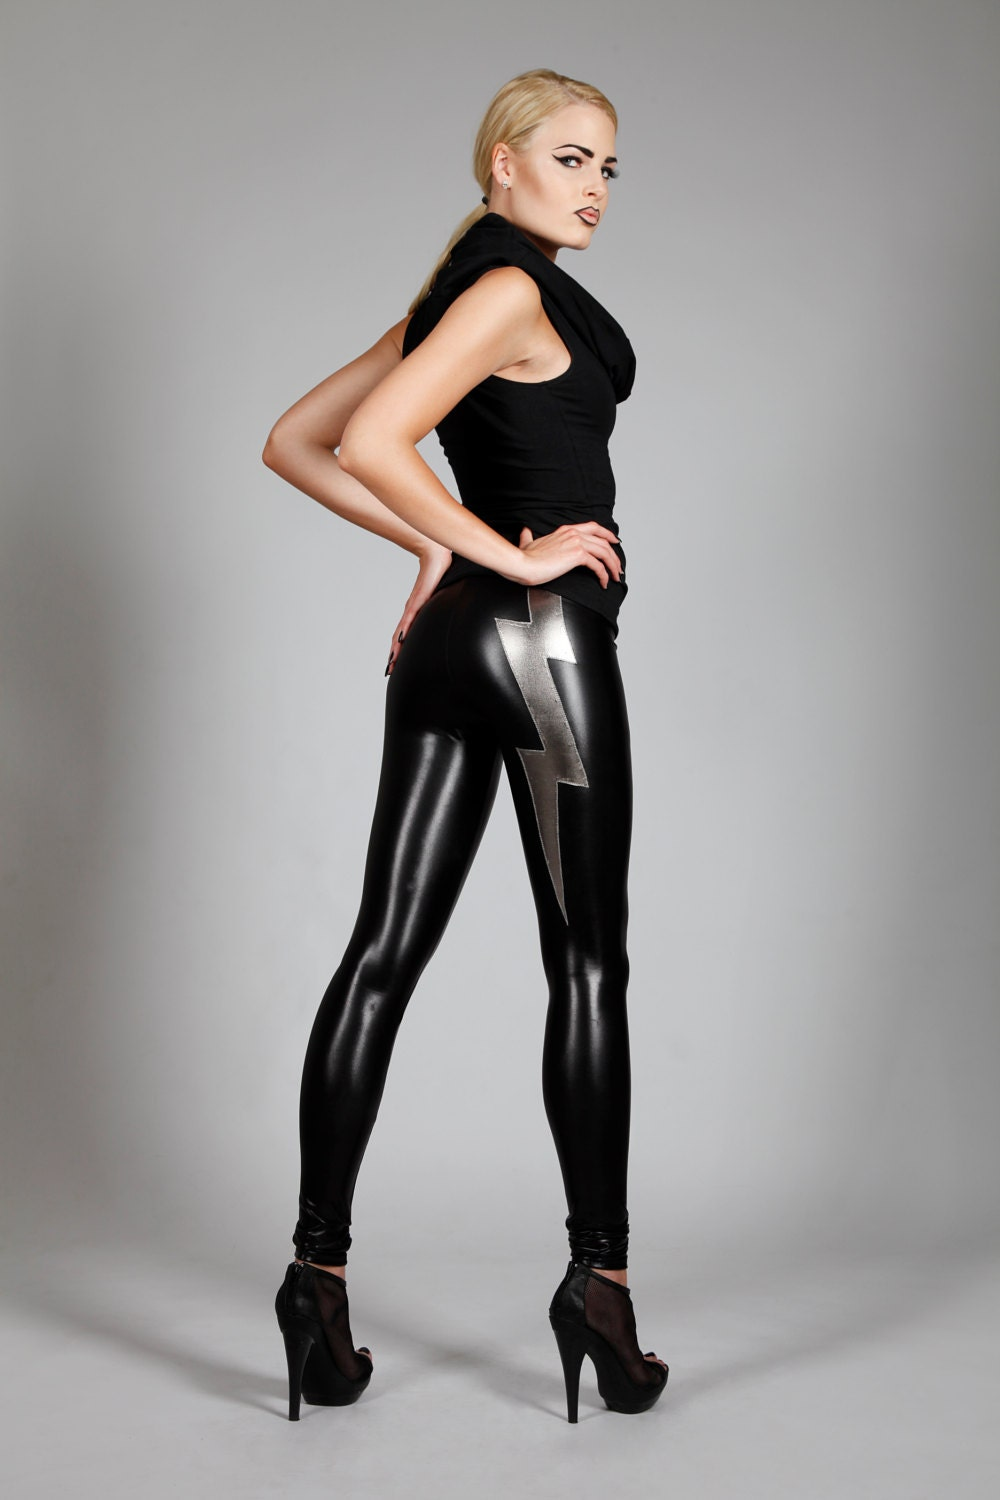 Find great deals on eBay for black spandex leggings. Shop with confidence.